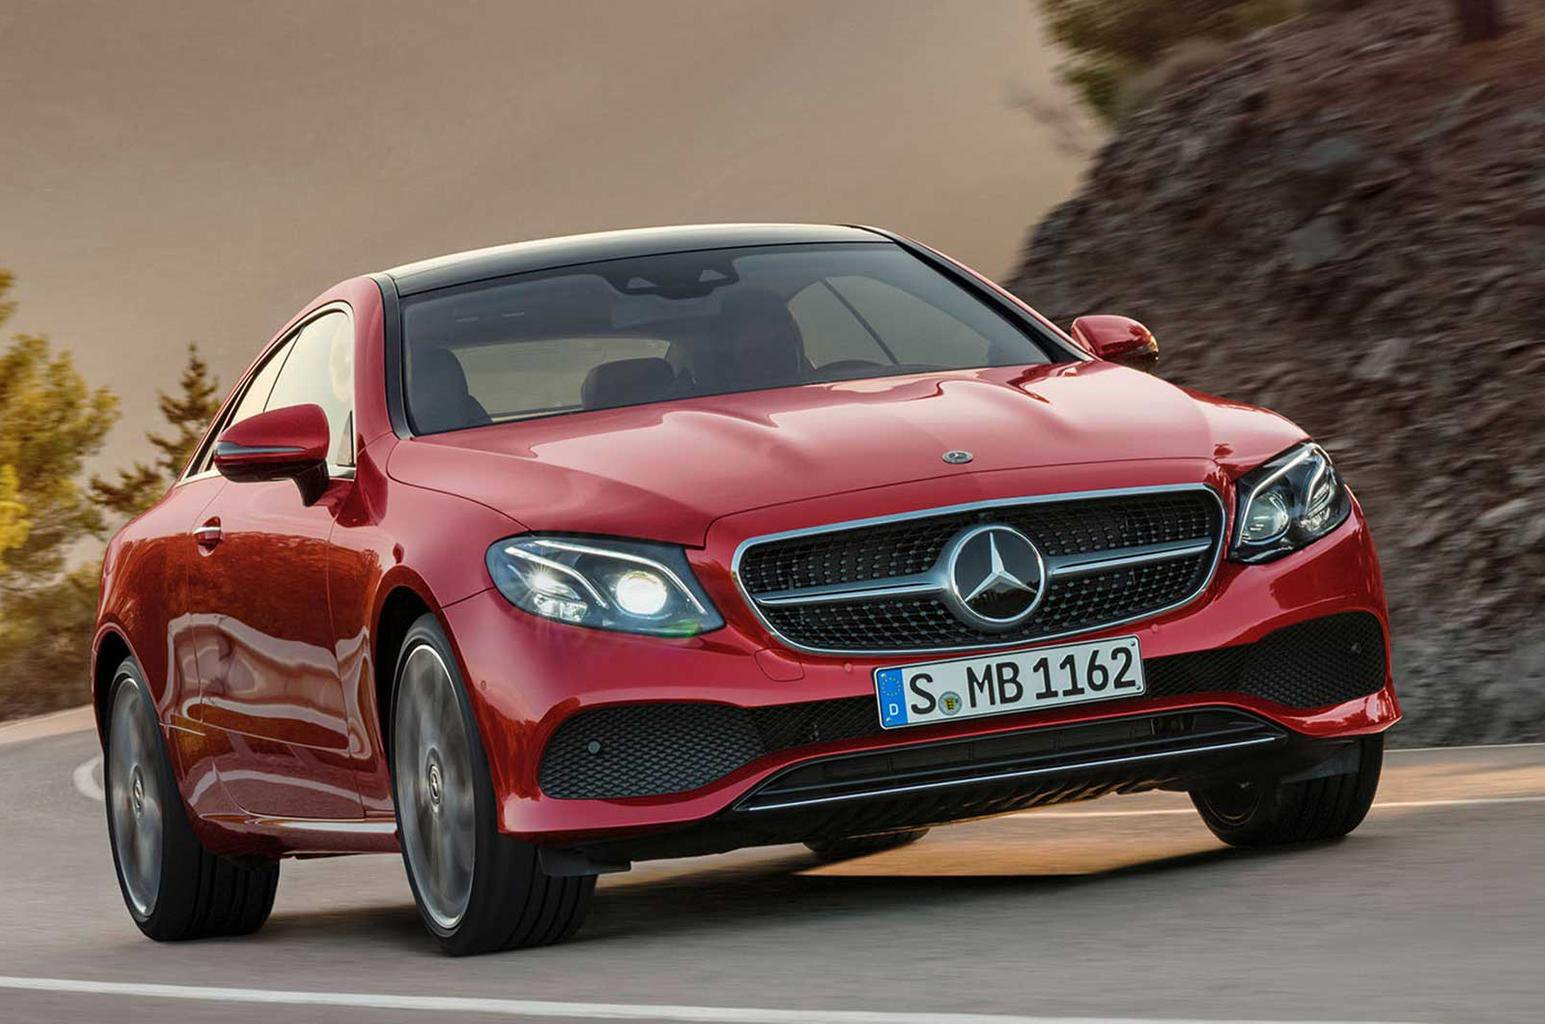 New Mercedes E-Class Coupe priced from £40,135